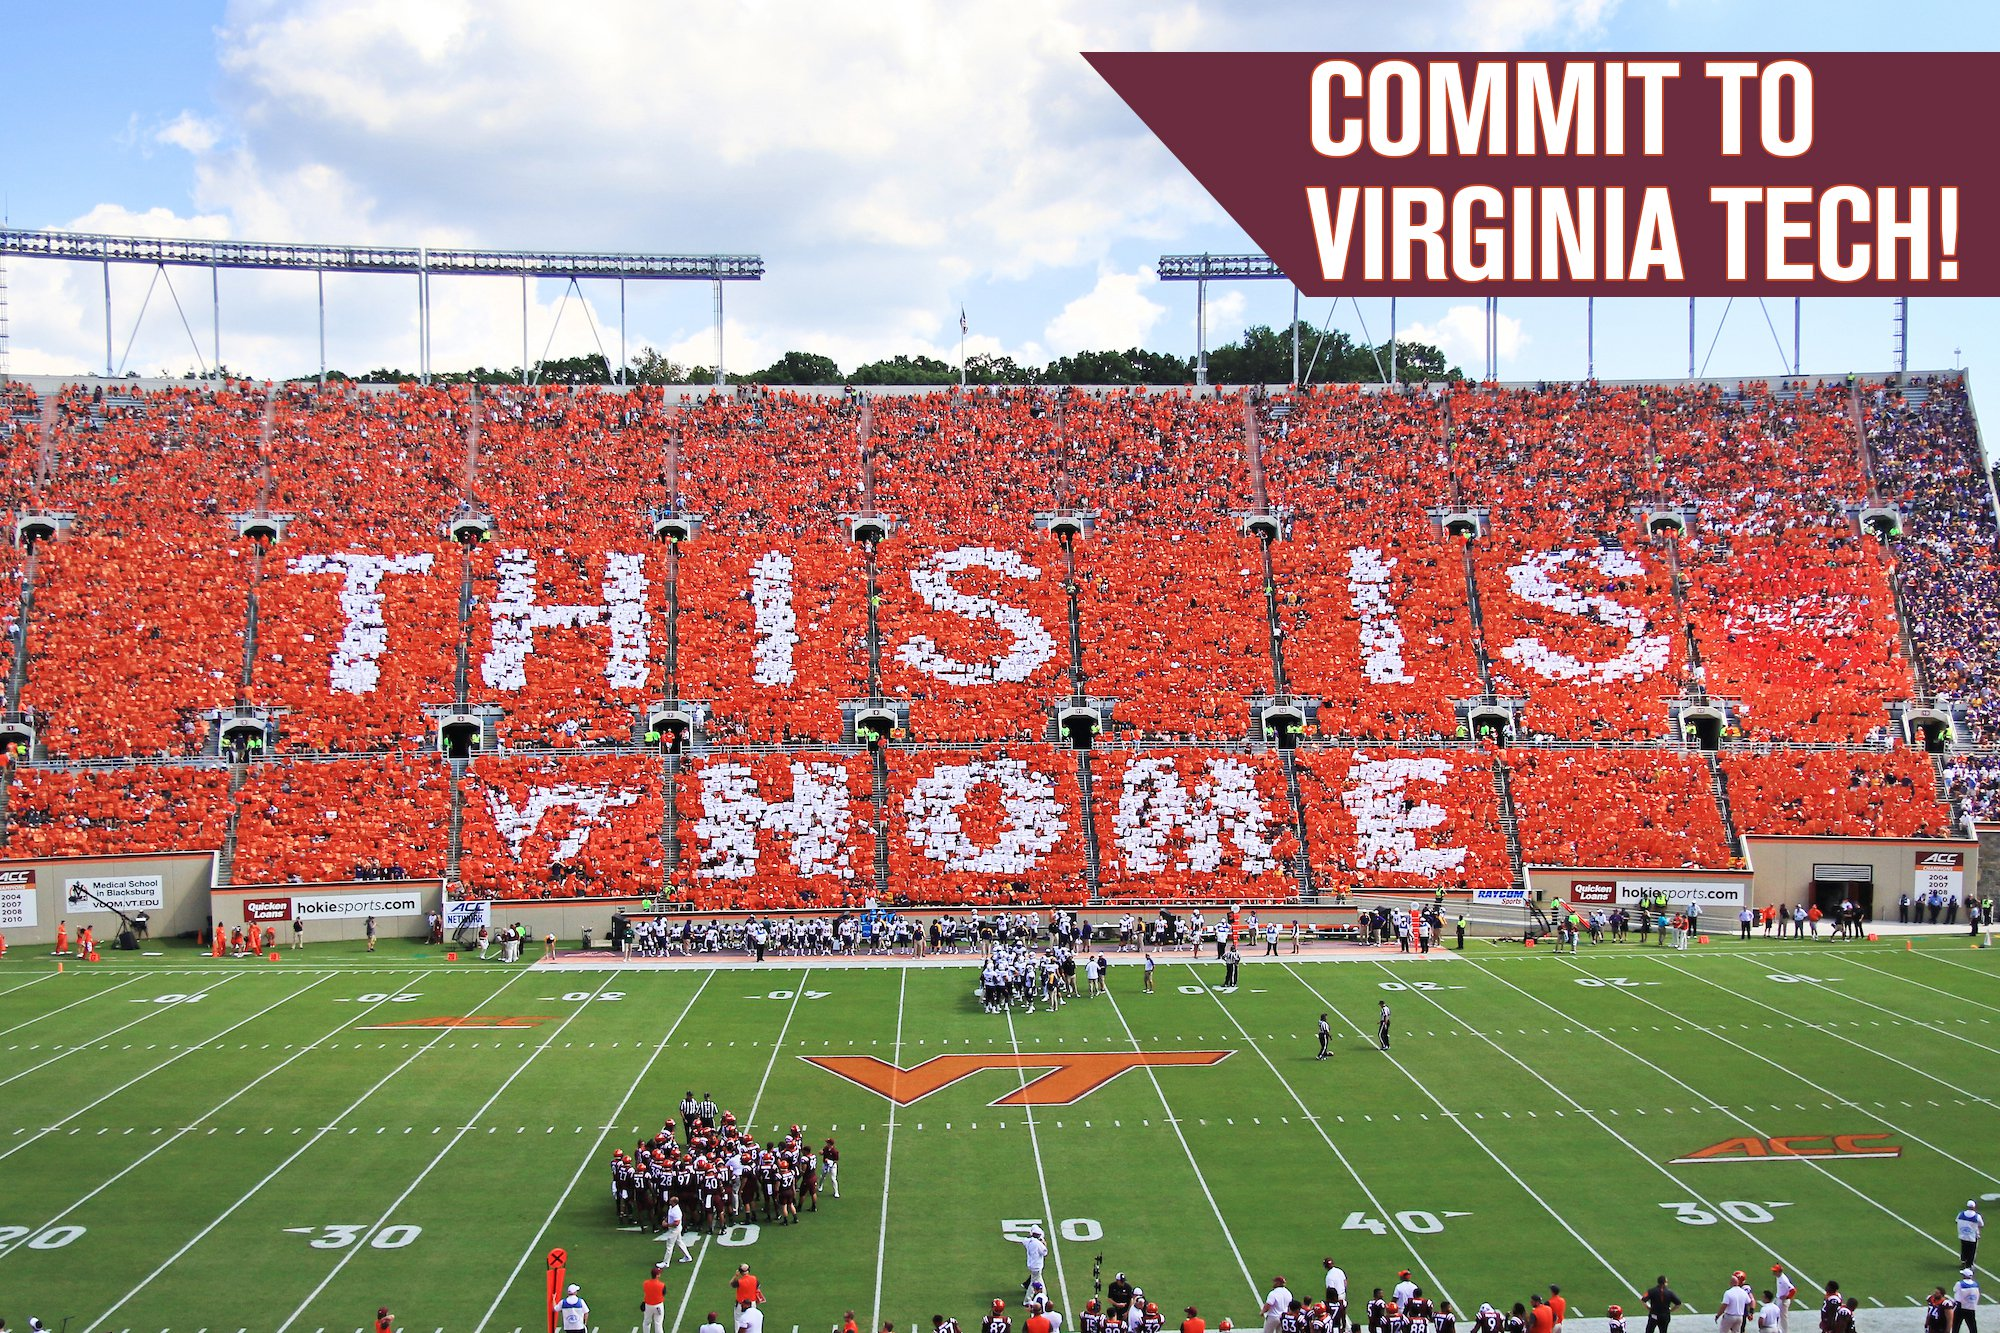 Commit to vt